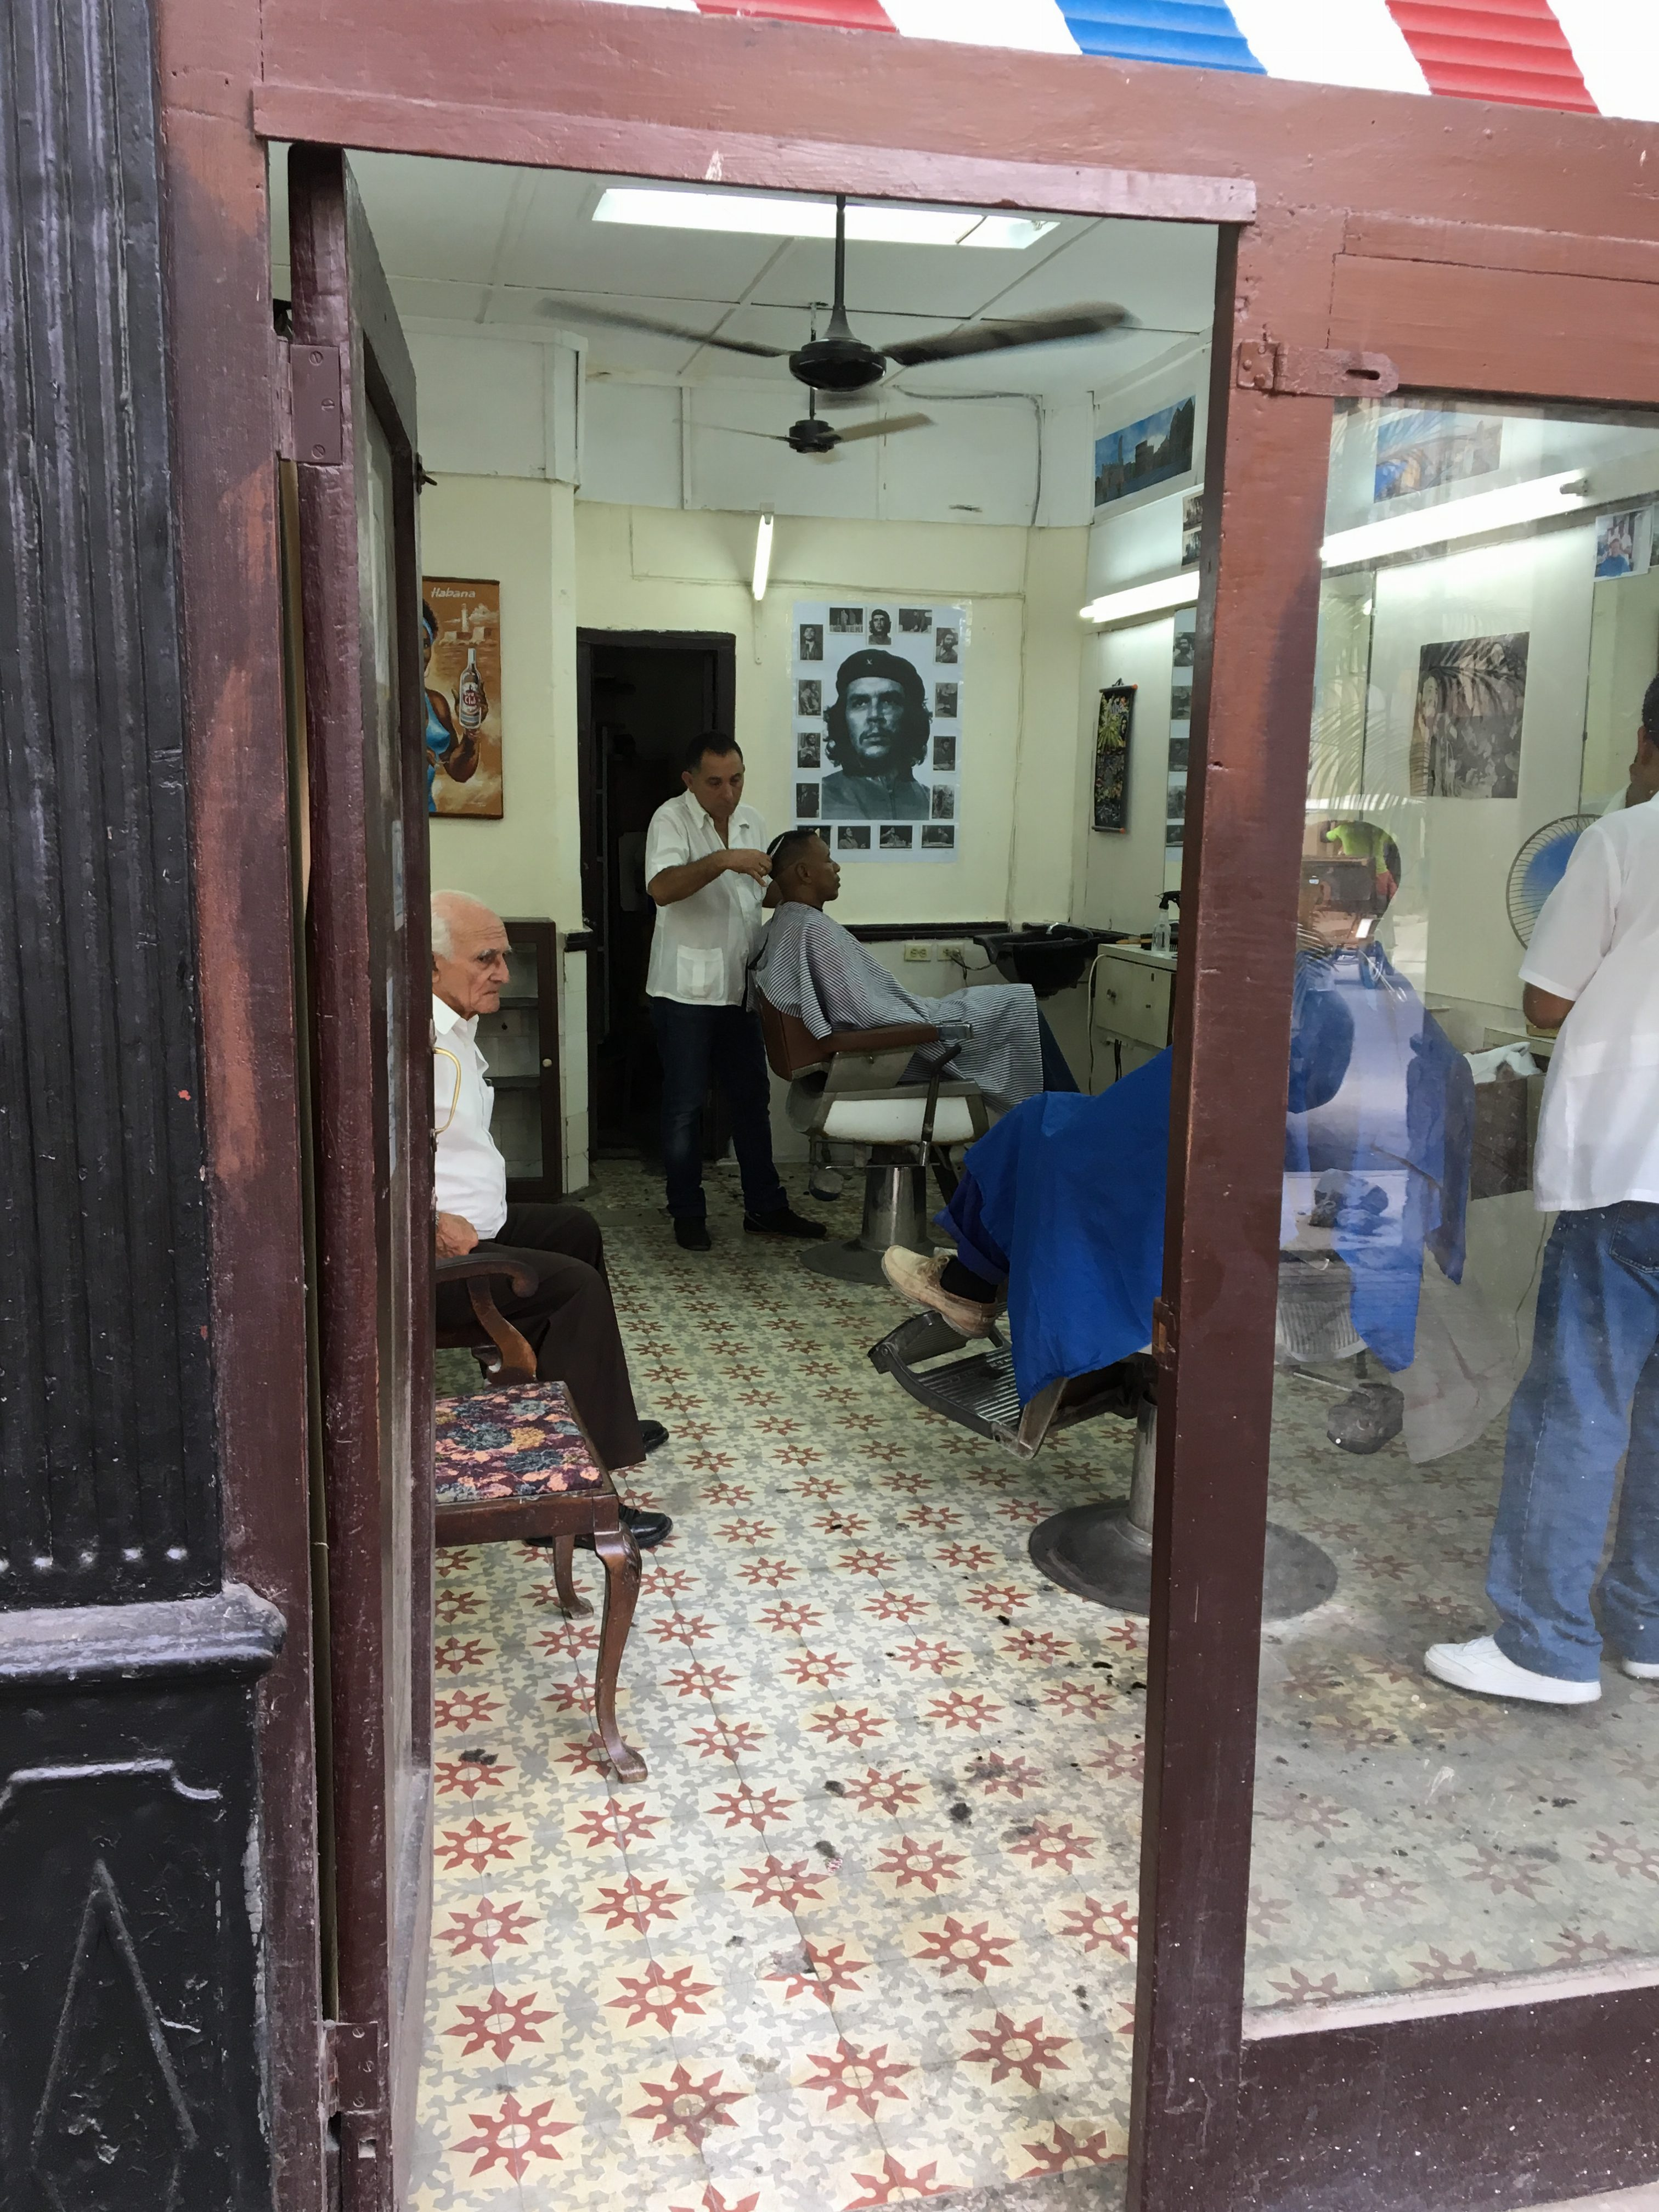 Barber Shop in Old Havana, December 11th. © Roberto García